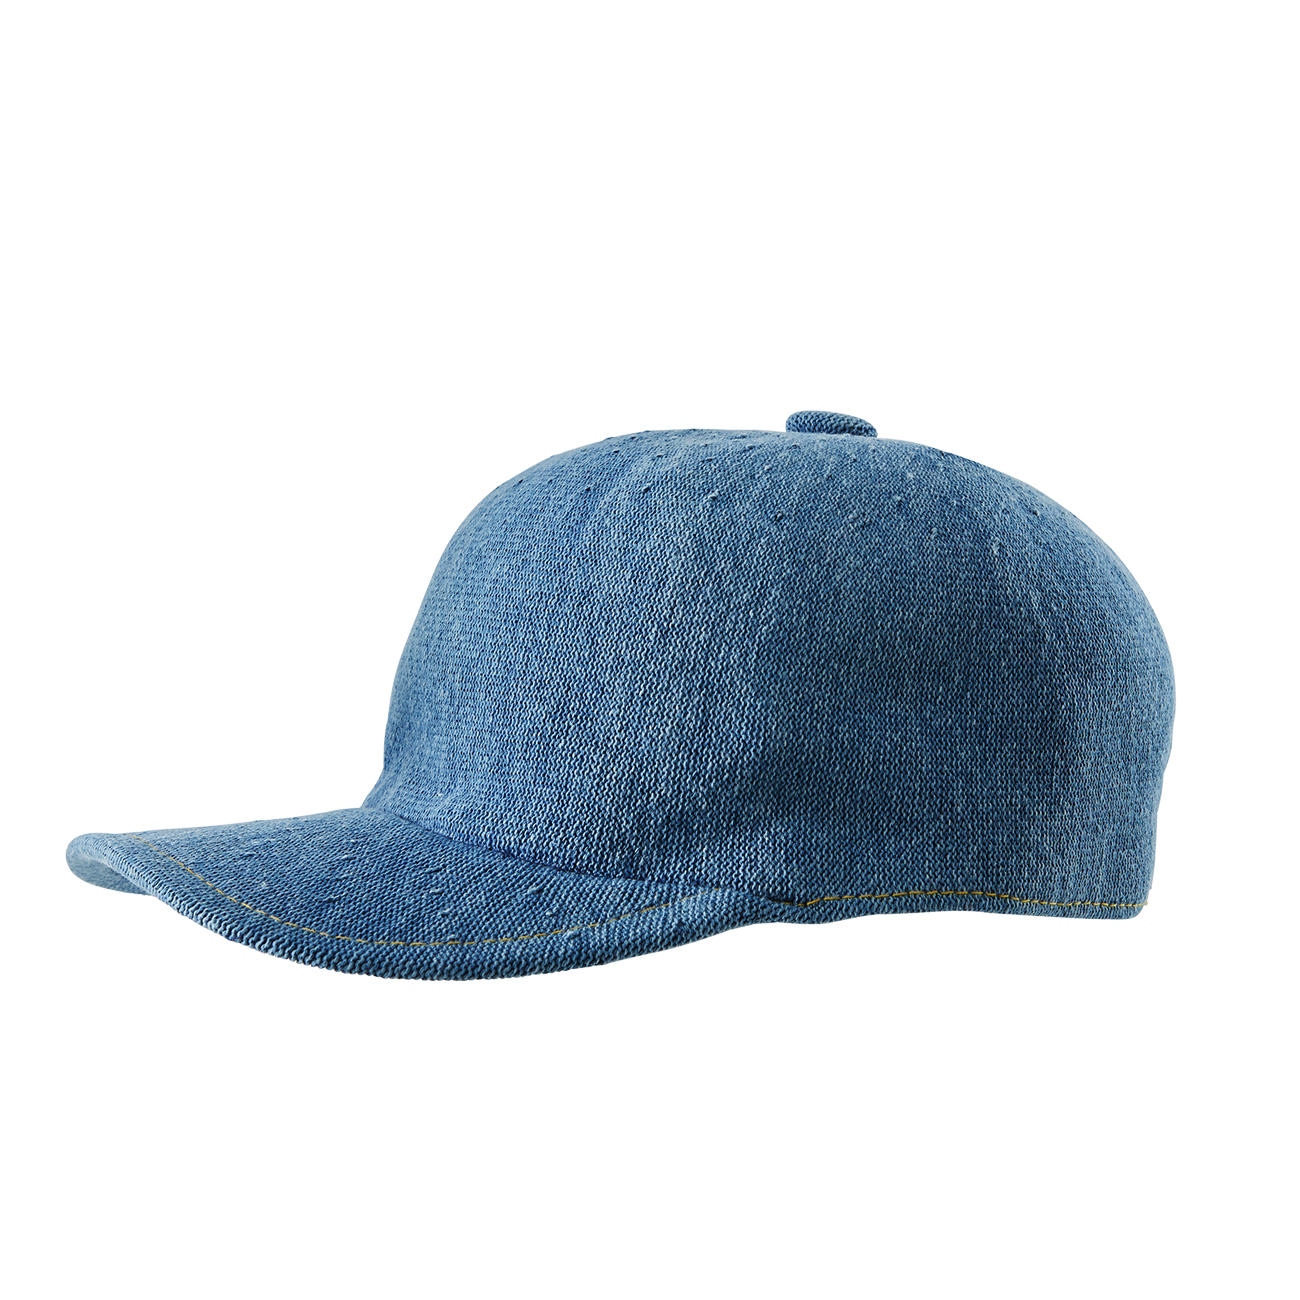 9adcbf8c265e1 Kangol® Denim Flat Cap - Airy knitwear. Casual denim look. The flat cap